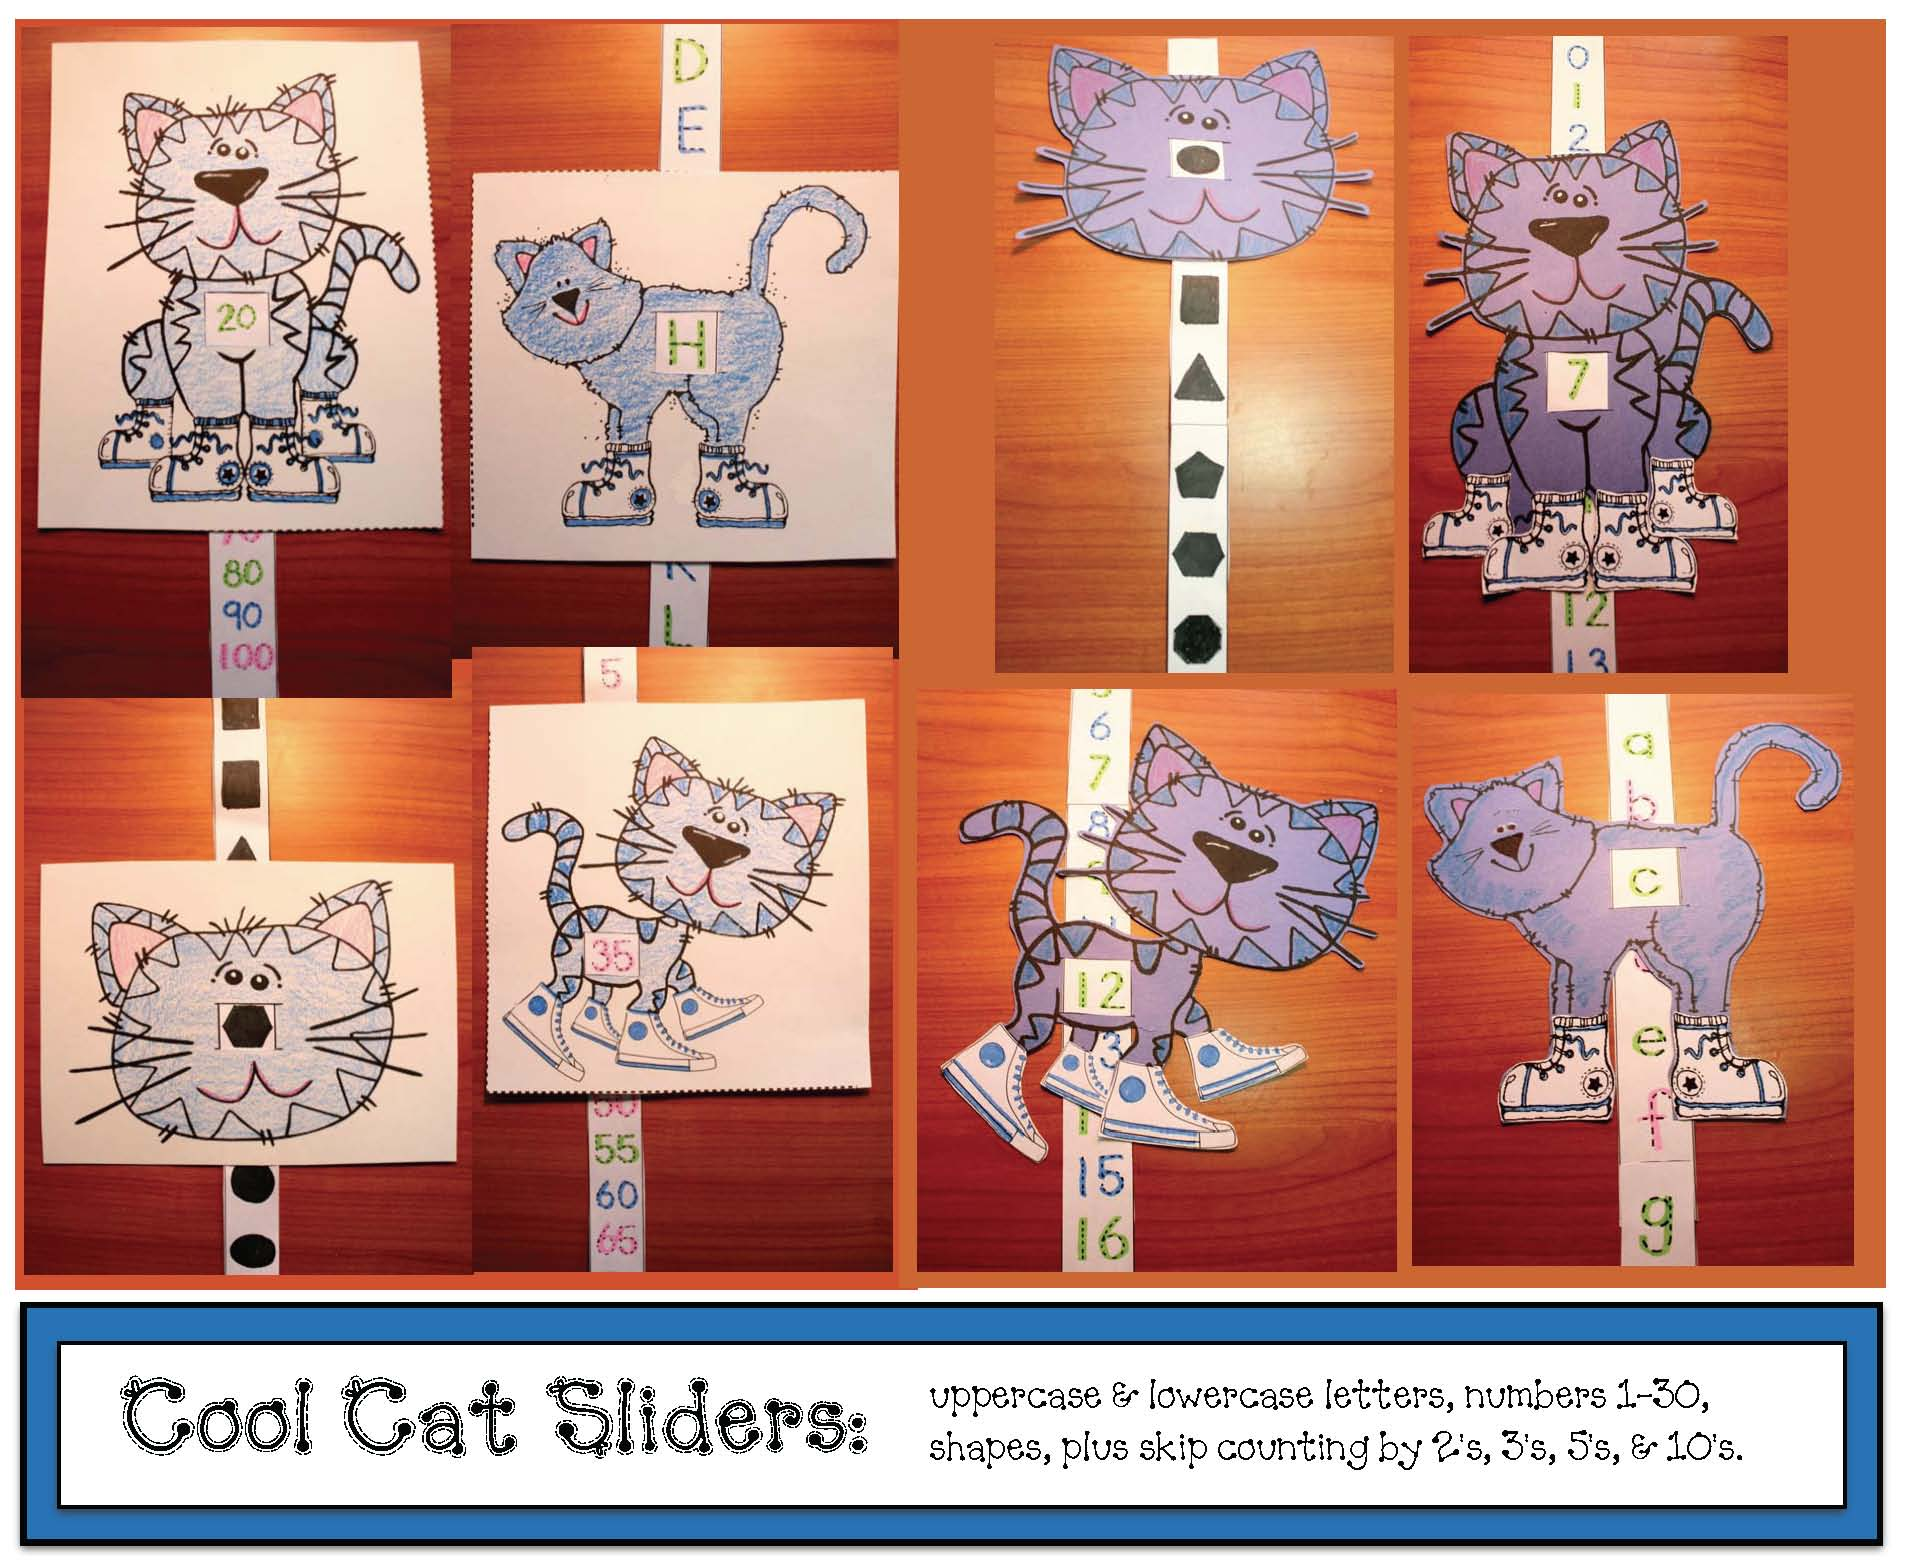 pete the cat activities, alphabet activities, number recognition, cat crafts, skip counting activities, shape activities, alphabet games, number games, shape games, alphabet assessments, alhabet games, I spy games, sliders